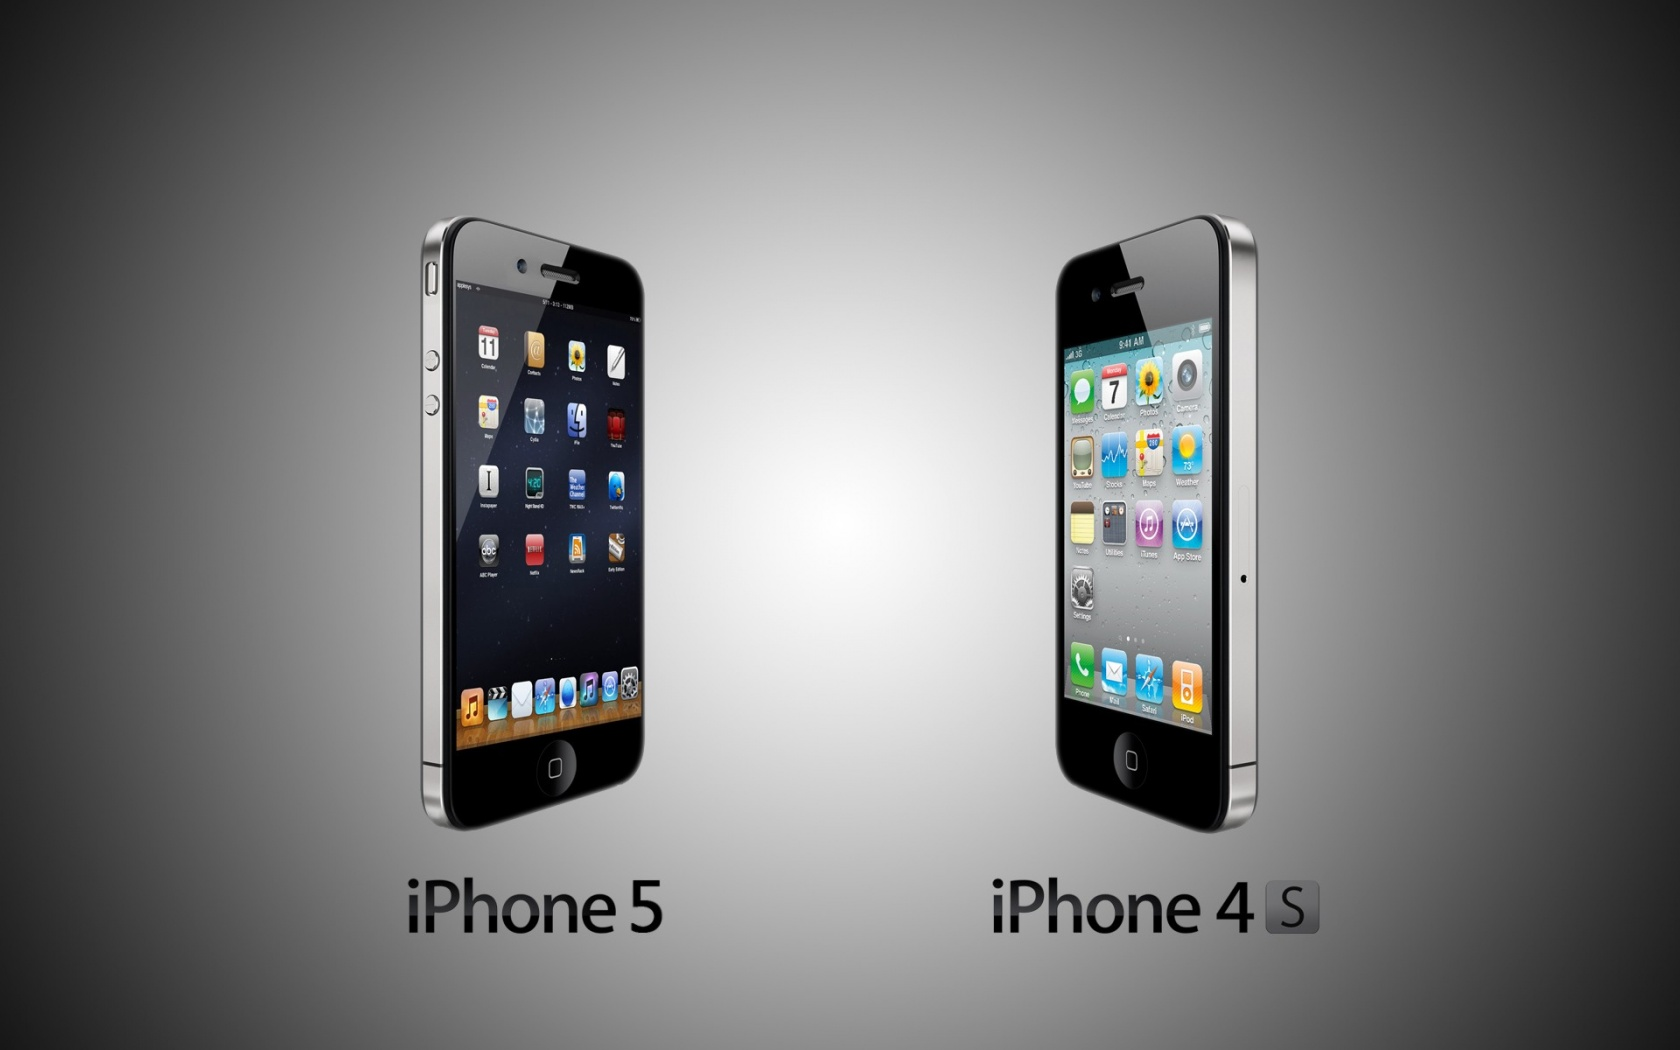 1680x1050 iPhone 5 vs Iphone 4s desktop PC and Mac wallpaper 1680x1050